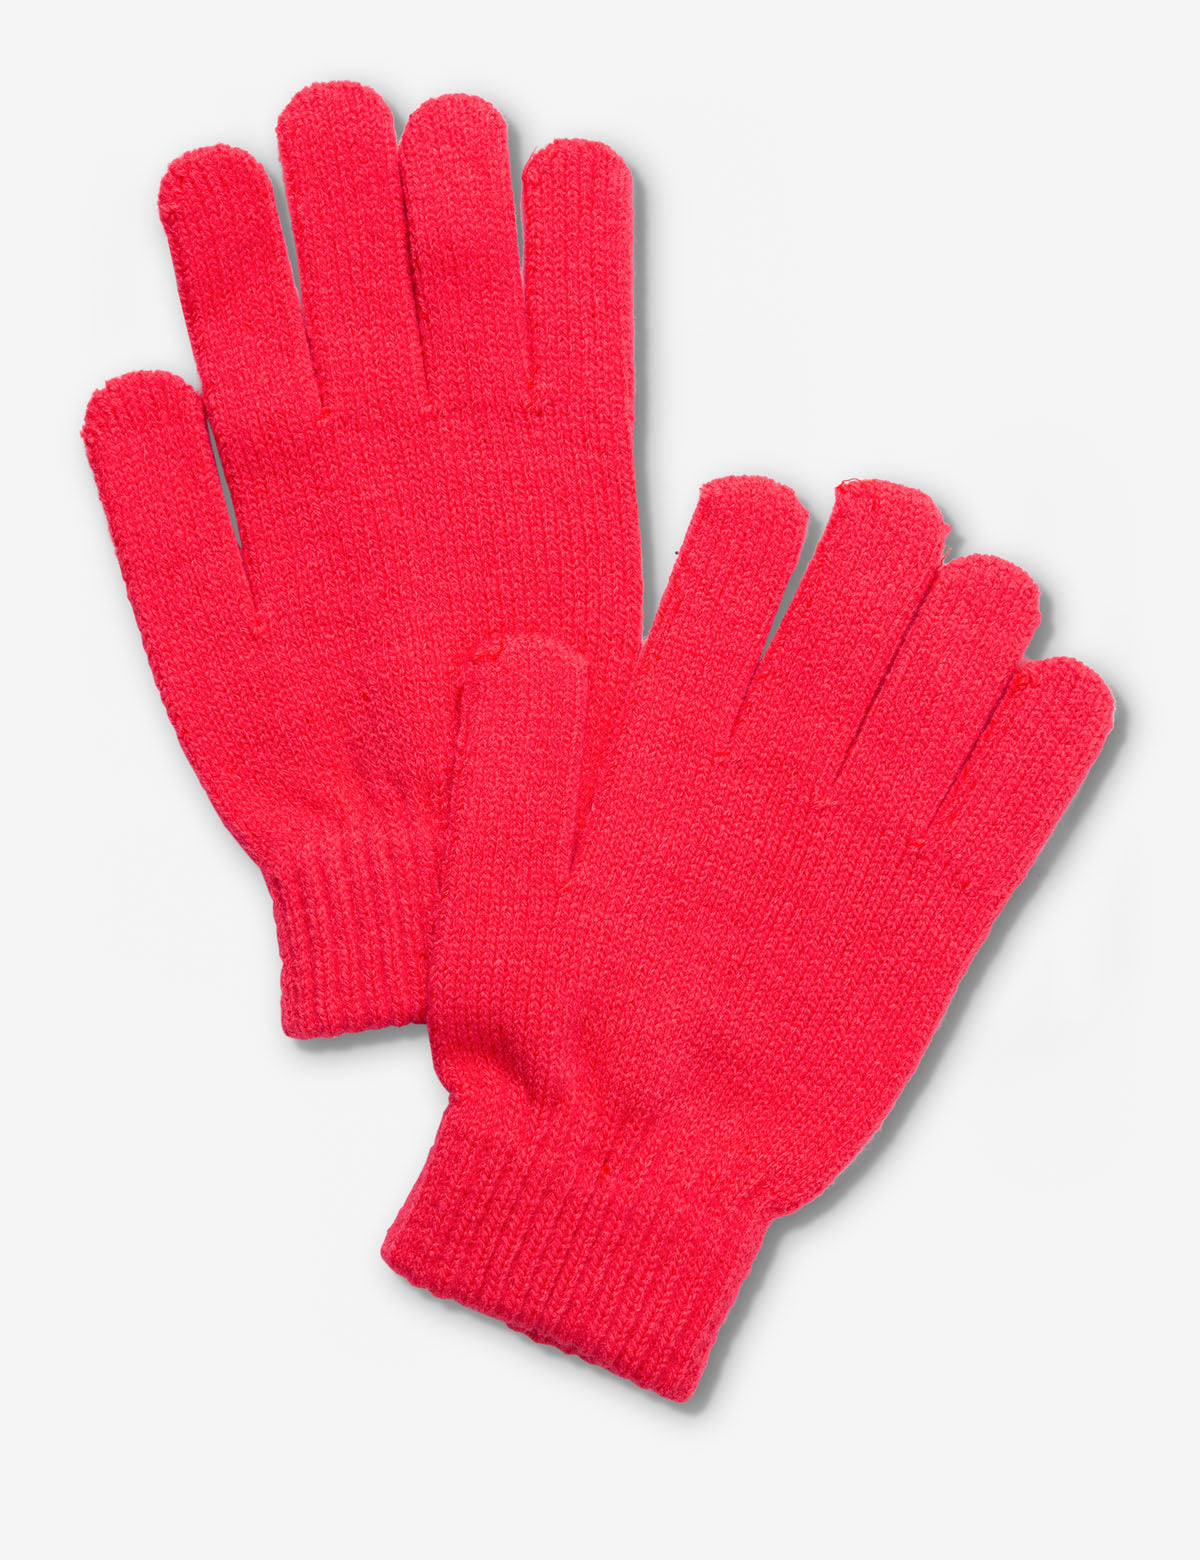 CABLE KNIT BEANIE AND GLOVE SET - U.S. Polo Assn.